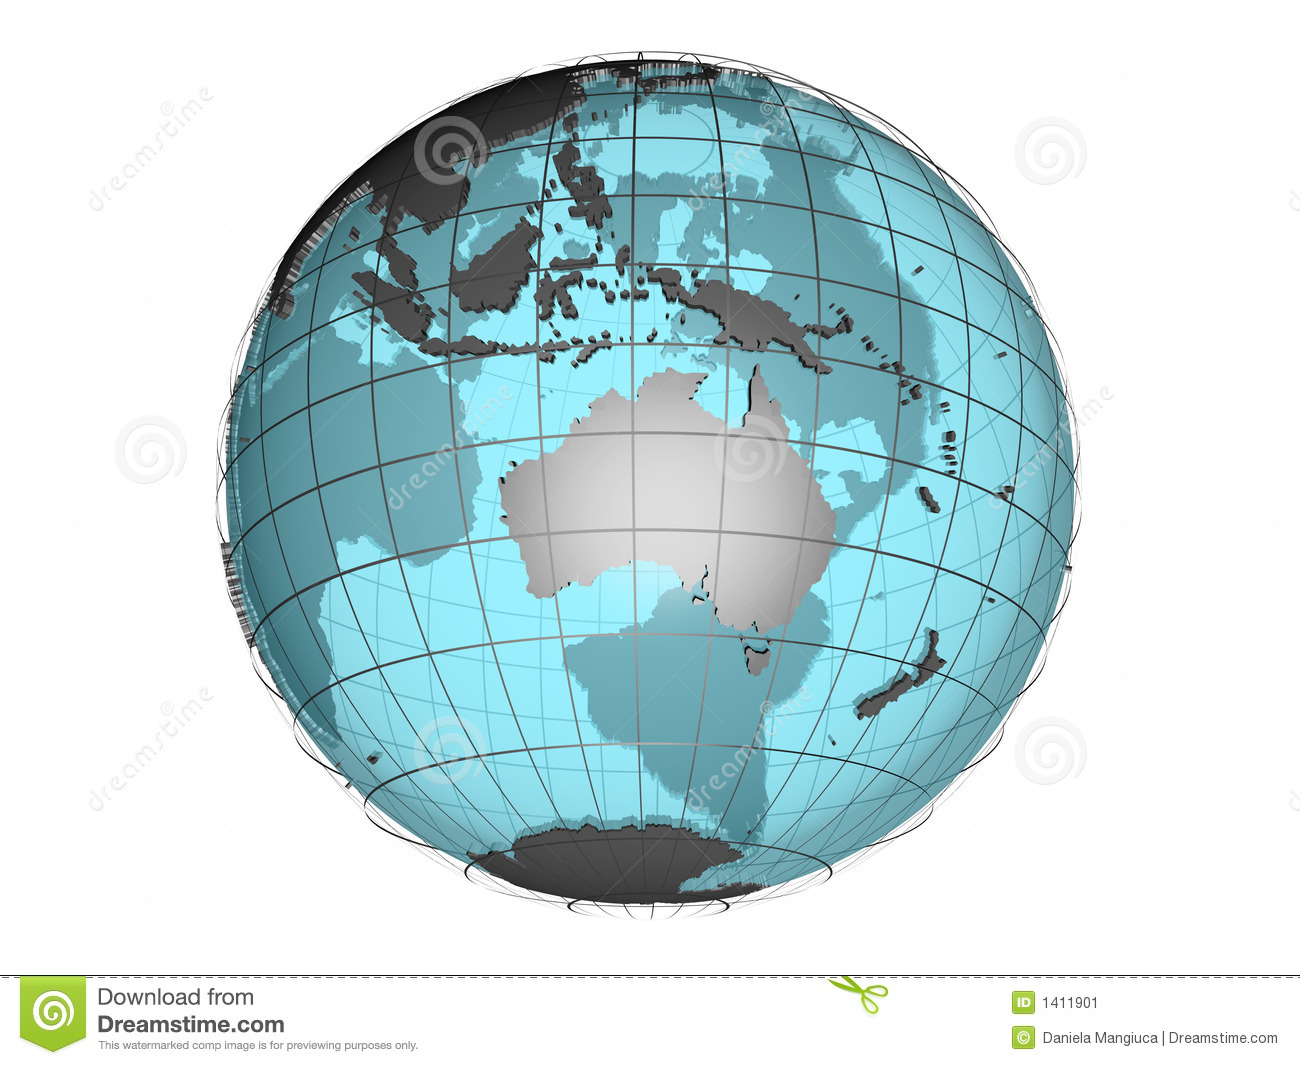 See Through 3d Globe Model Showing Australia And Oceania